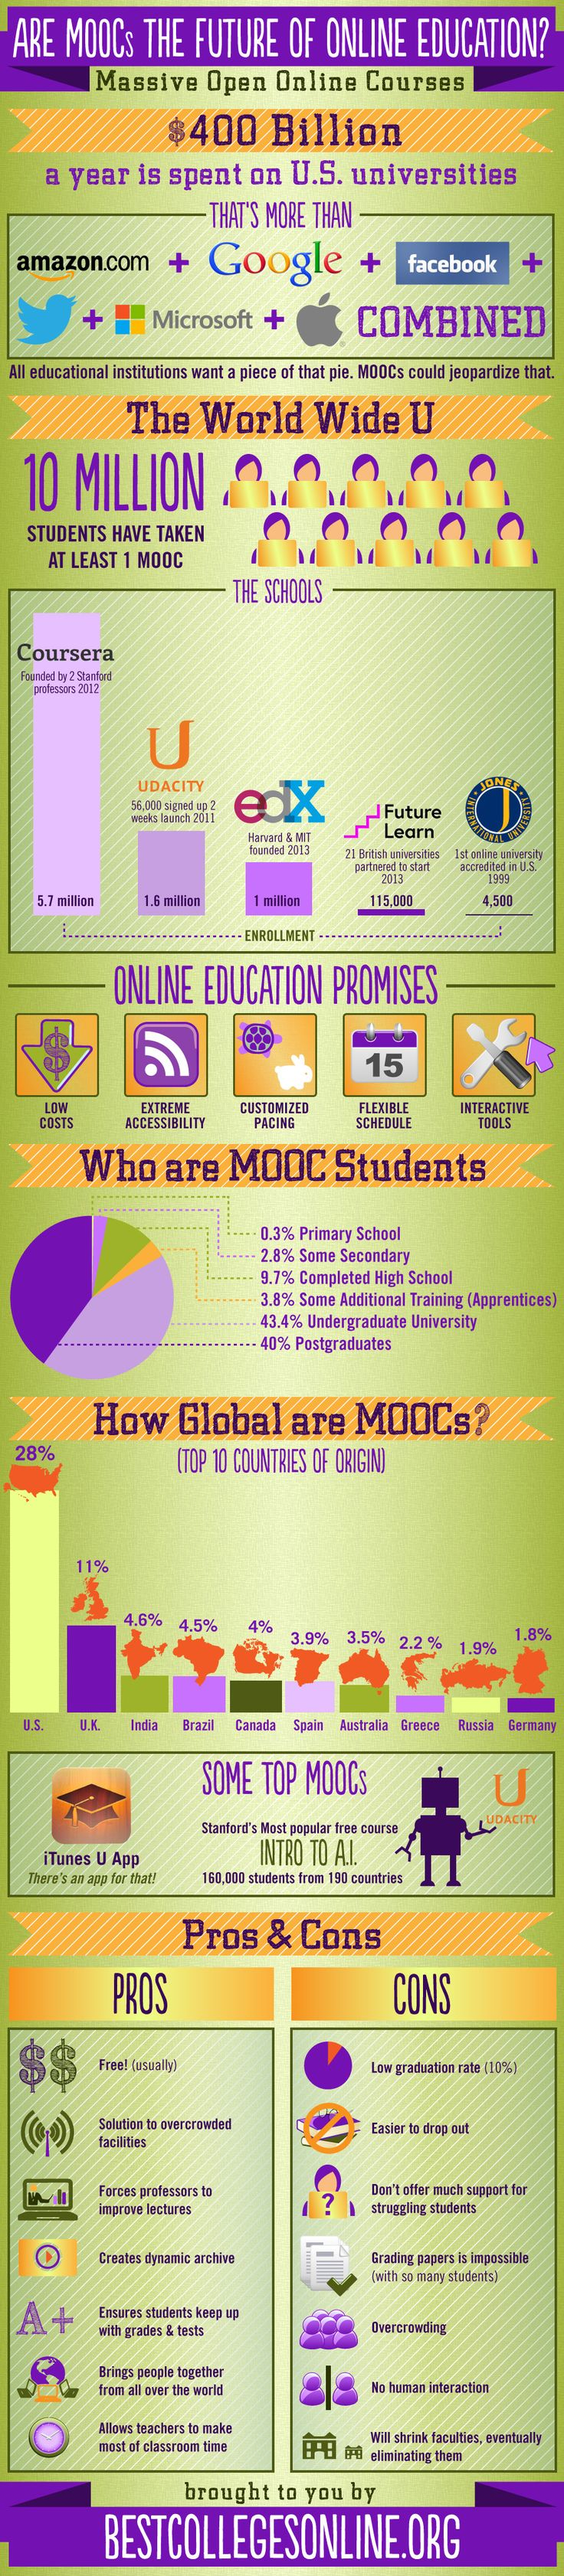 best images about moocs ps professor and student trends are moocs the future of online education this image includes some startling statistics on moocs it also lists some pros and cons of moocs